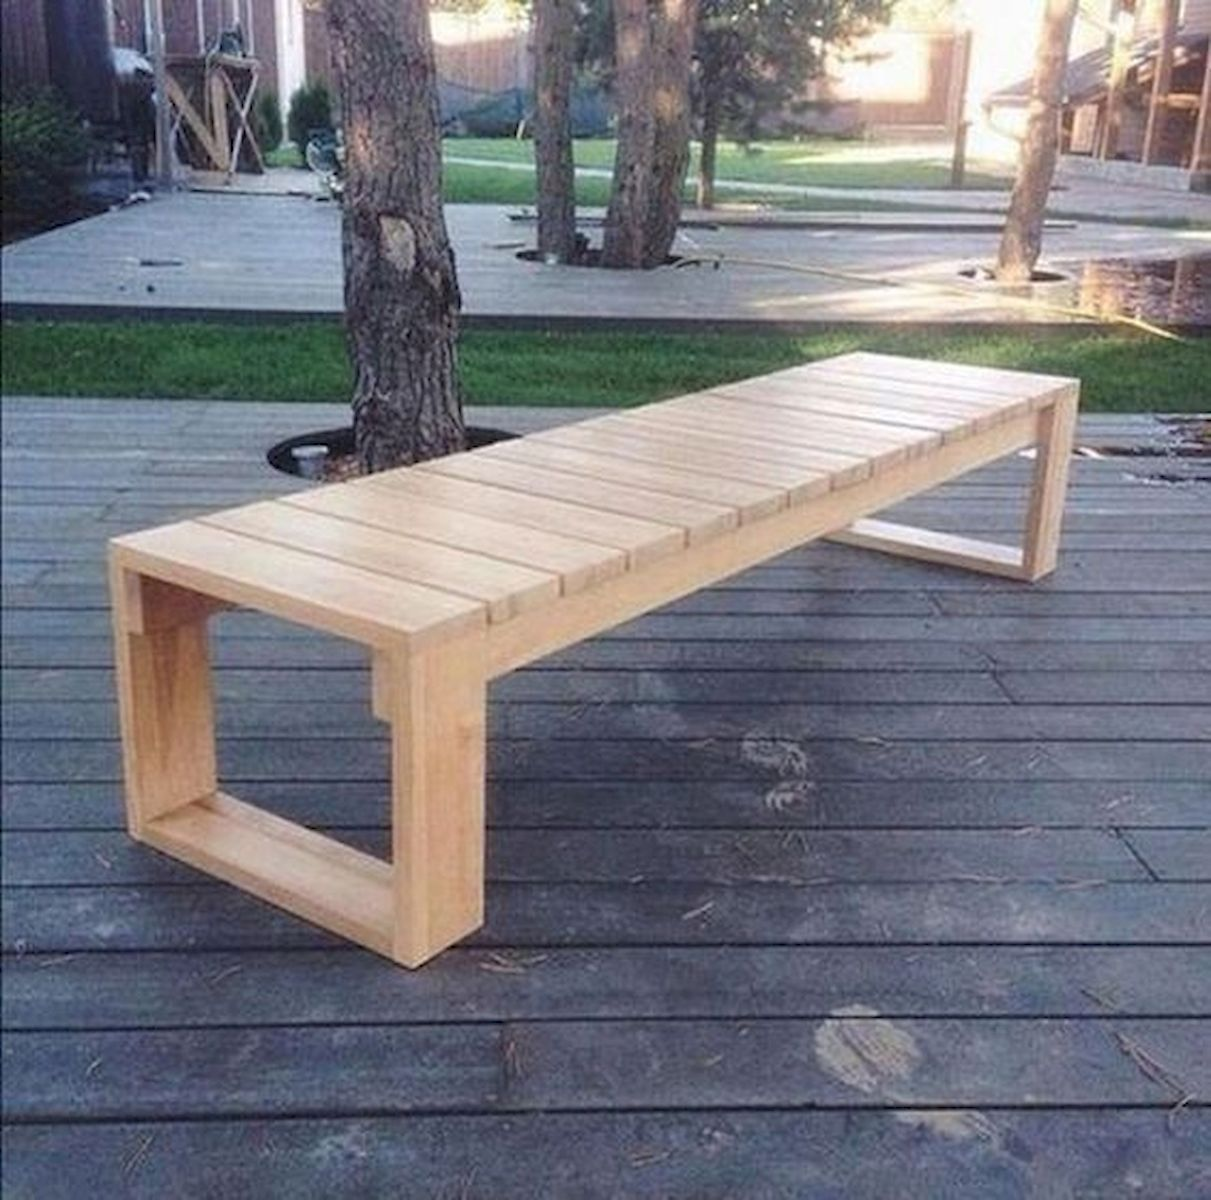 40 Creative Diy Outdoor Bench Ideas For Backyard And Front Yard